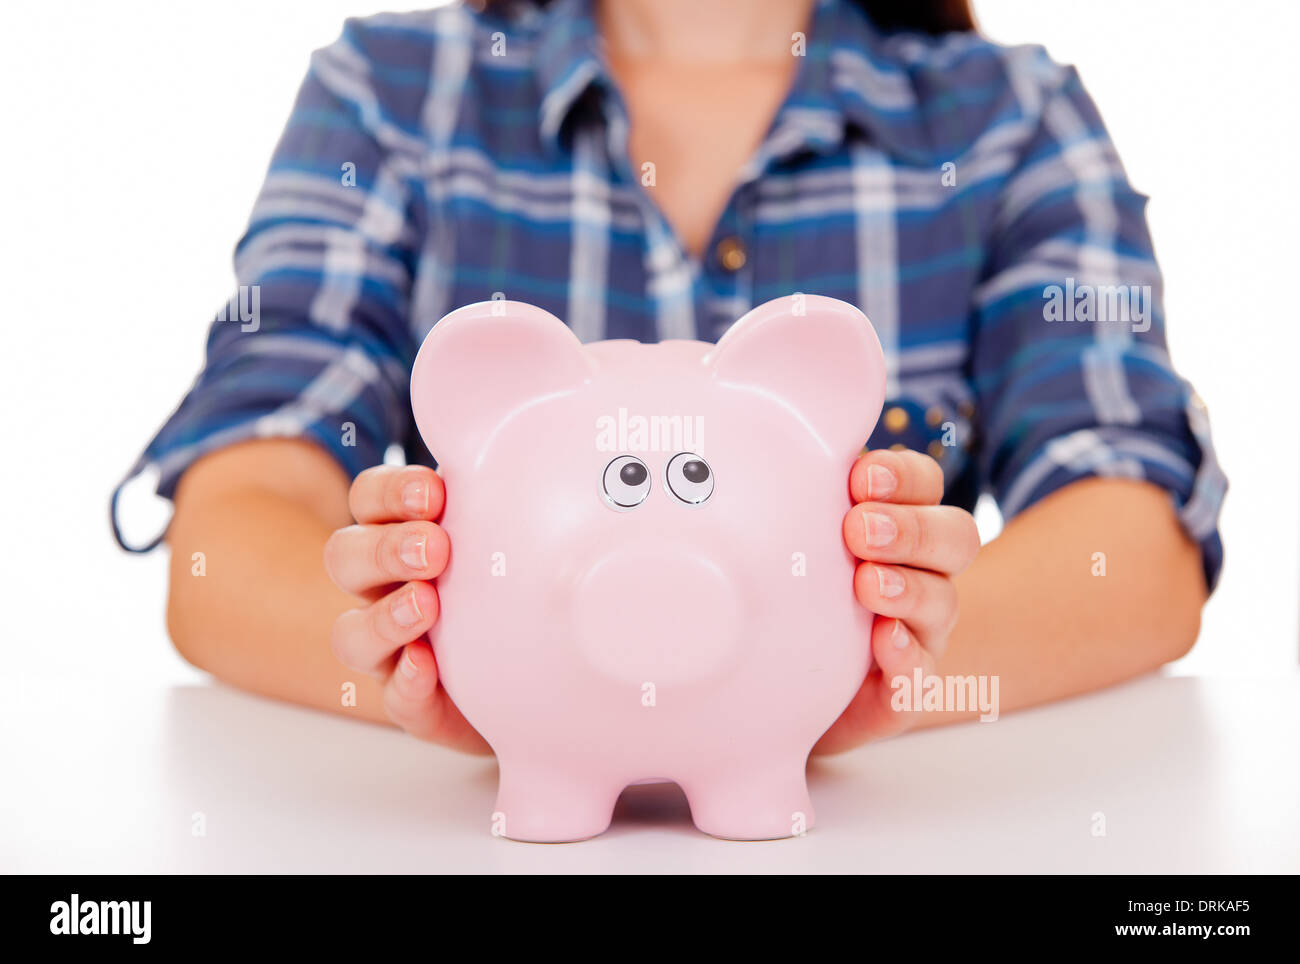 Young girl/woman with her hands holding onto a large pink piggy bank. - Stock Image